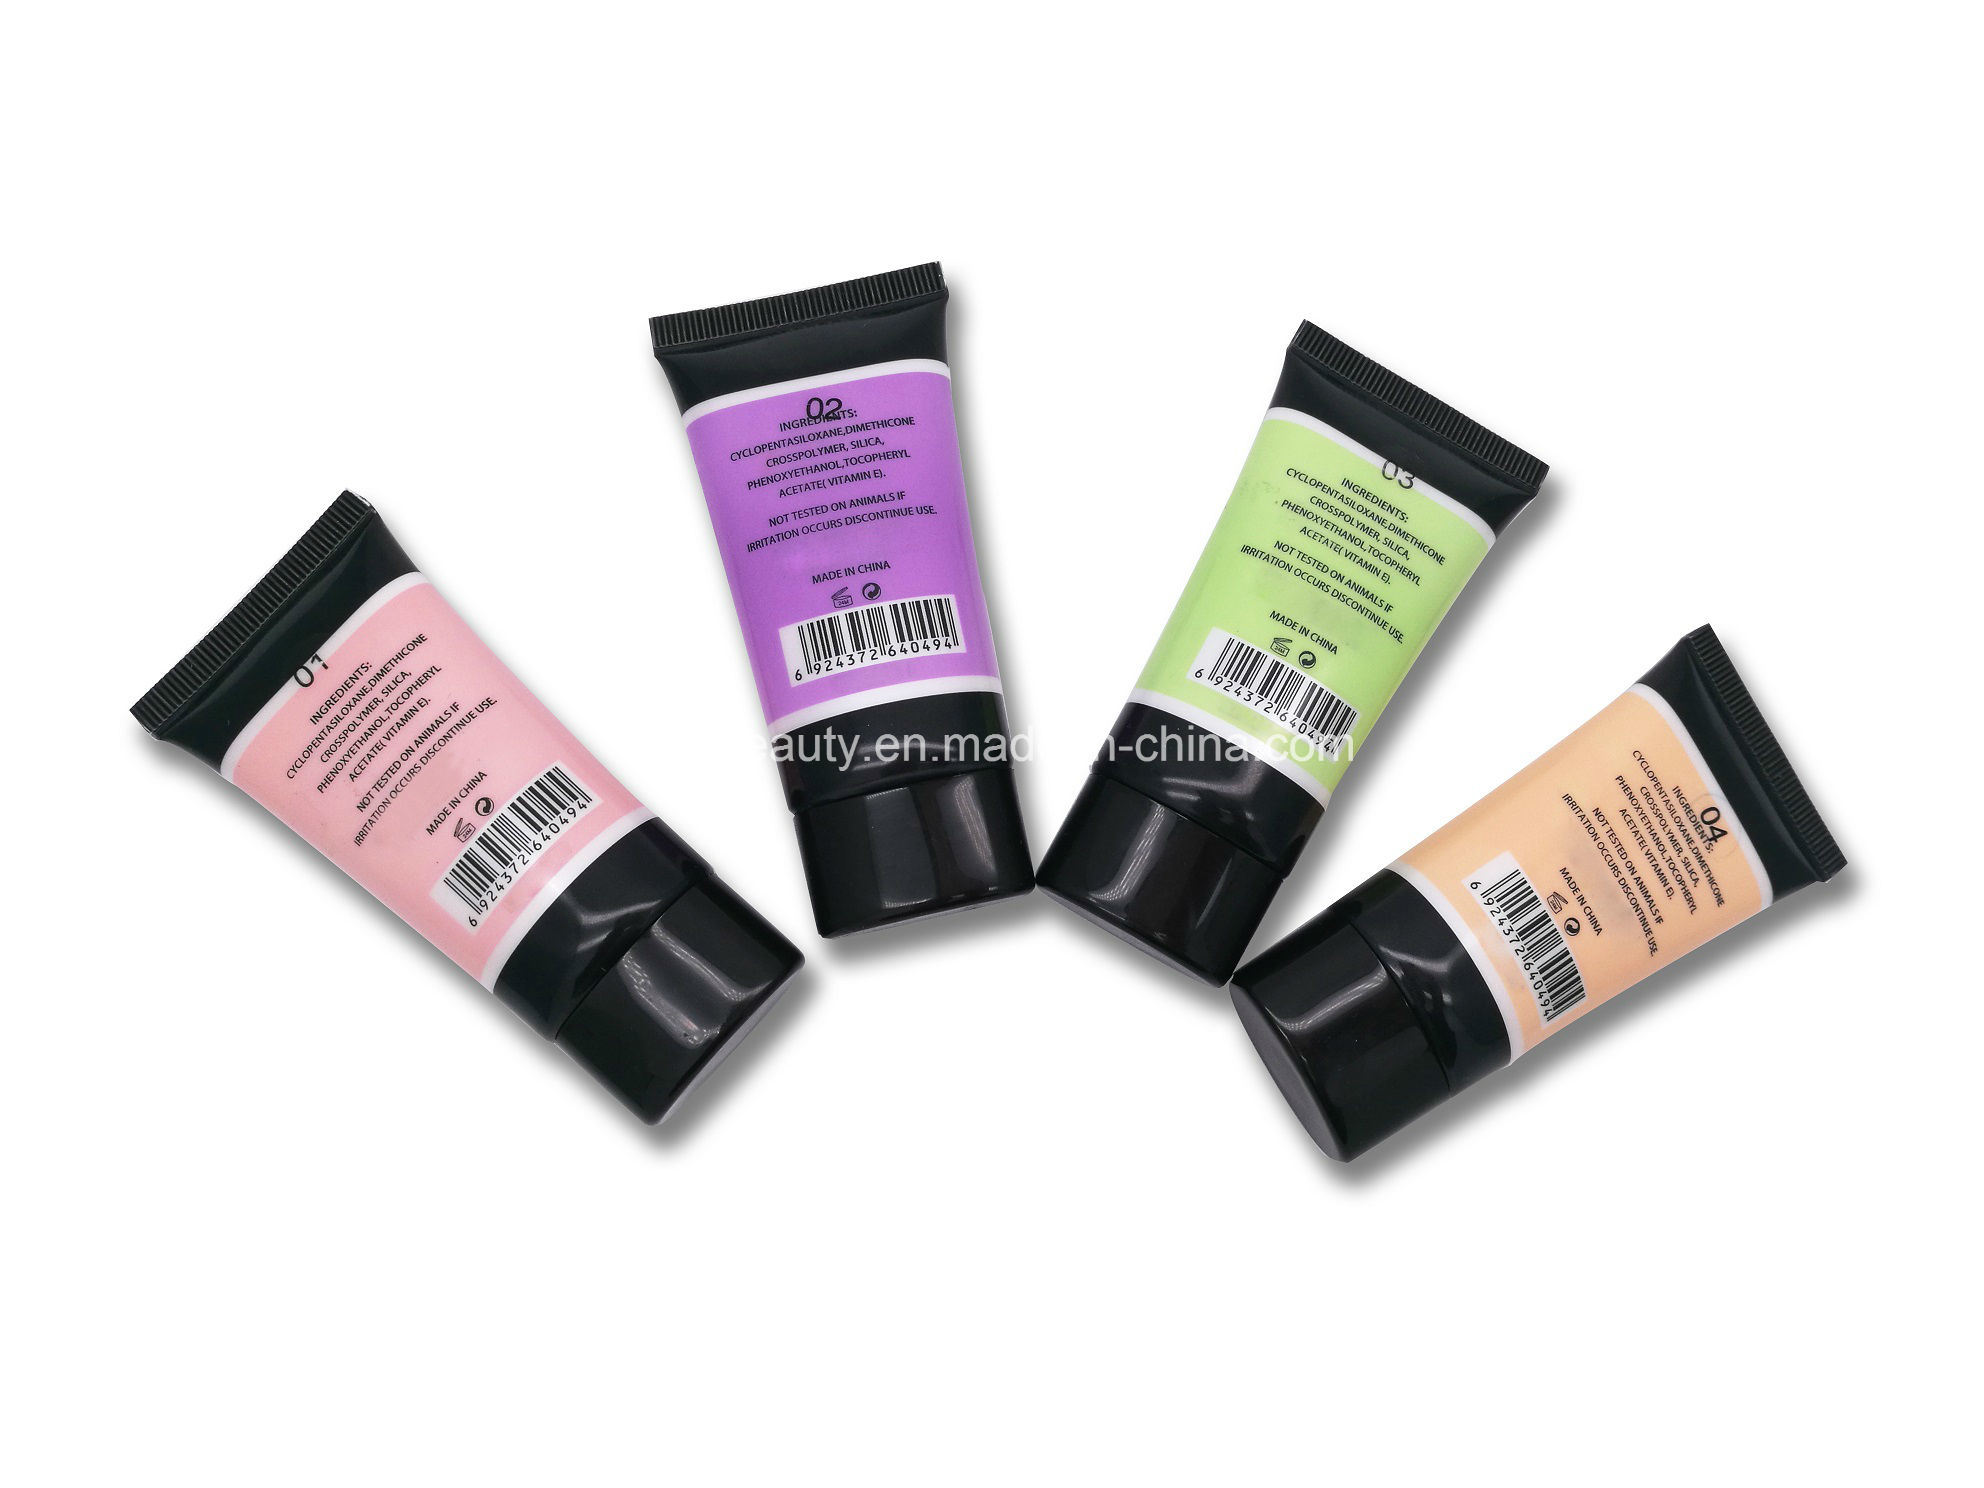 Hot Selling High Quality 4 Different Color OEM/ODM Reasonable Price Smoothing Face Primer with High Definition